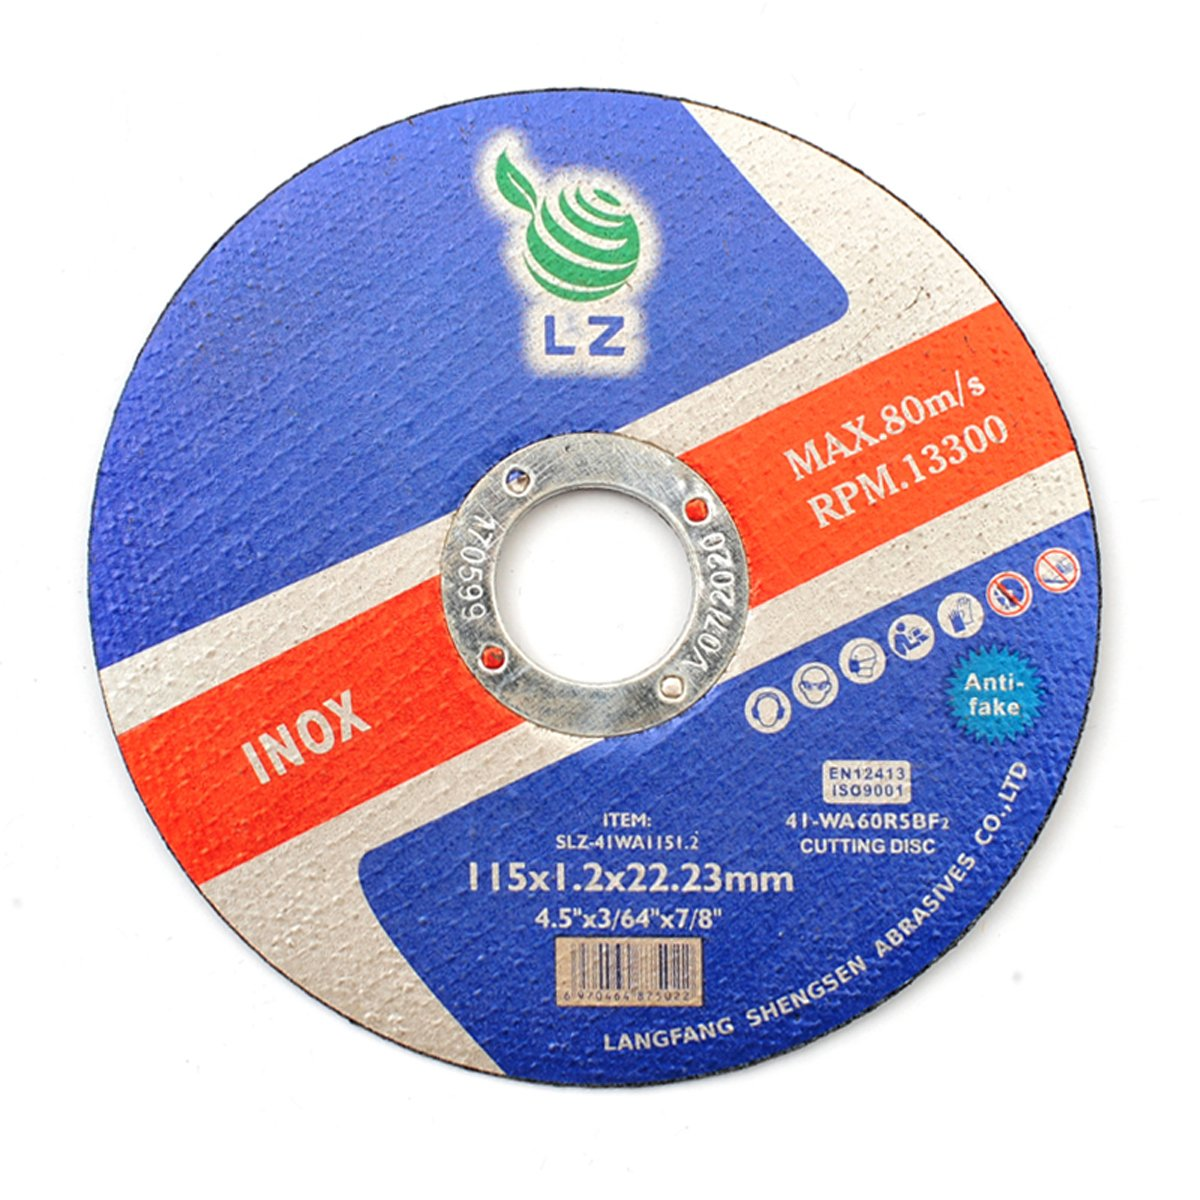 Cutting Discs Metal 75mm x 1mm x 9.5mm(3')– Set of 25, Air tool stainless steel cut off discs Worth Worth-13